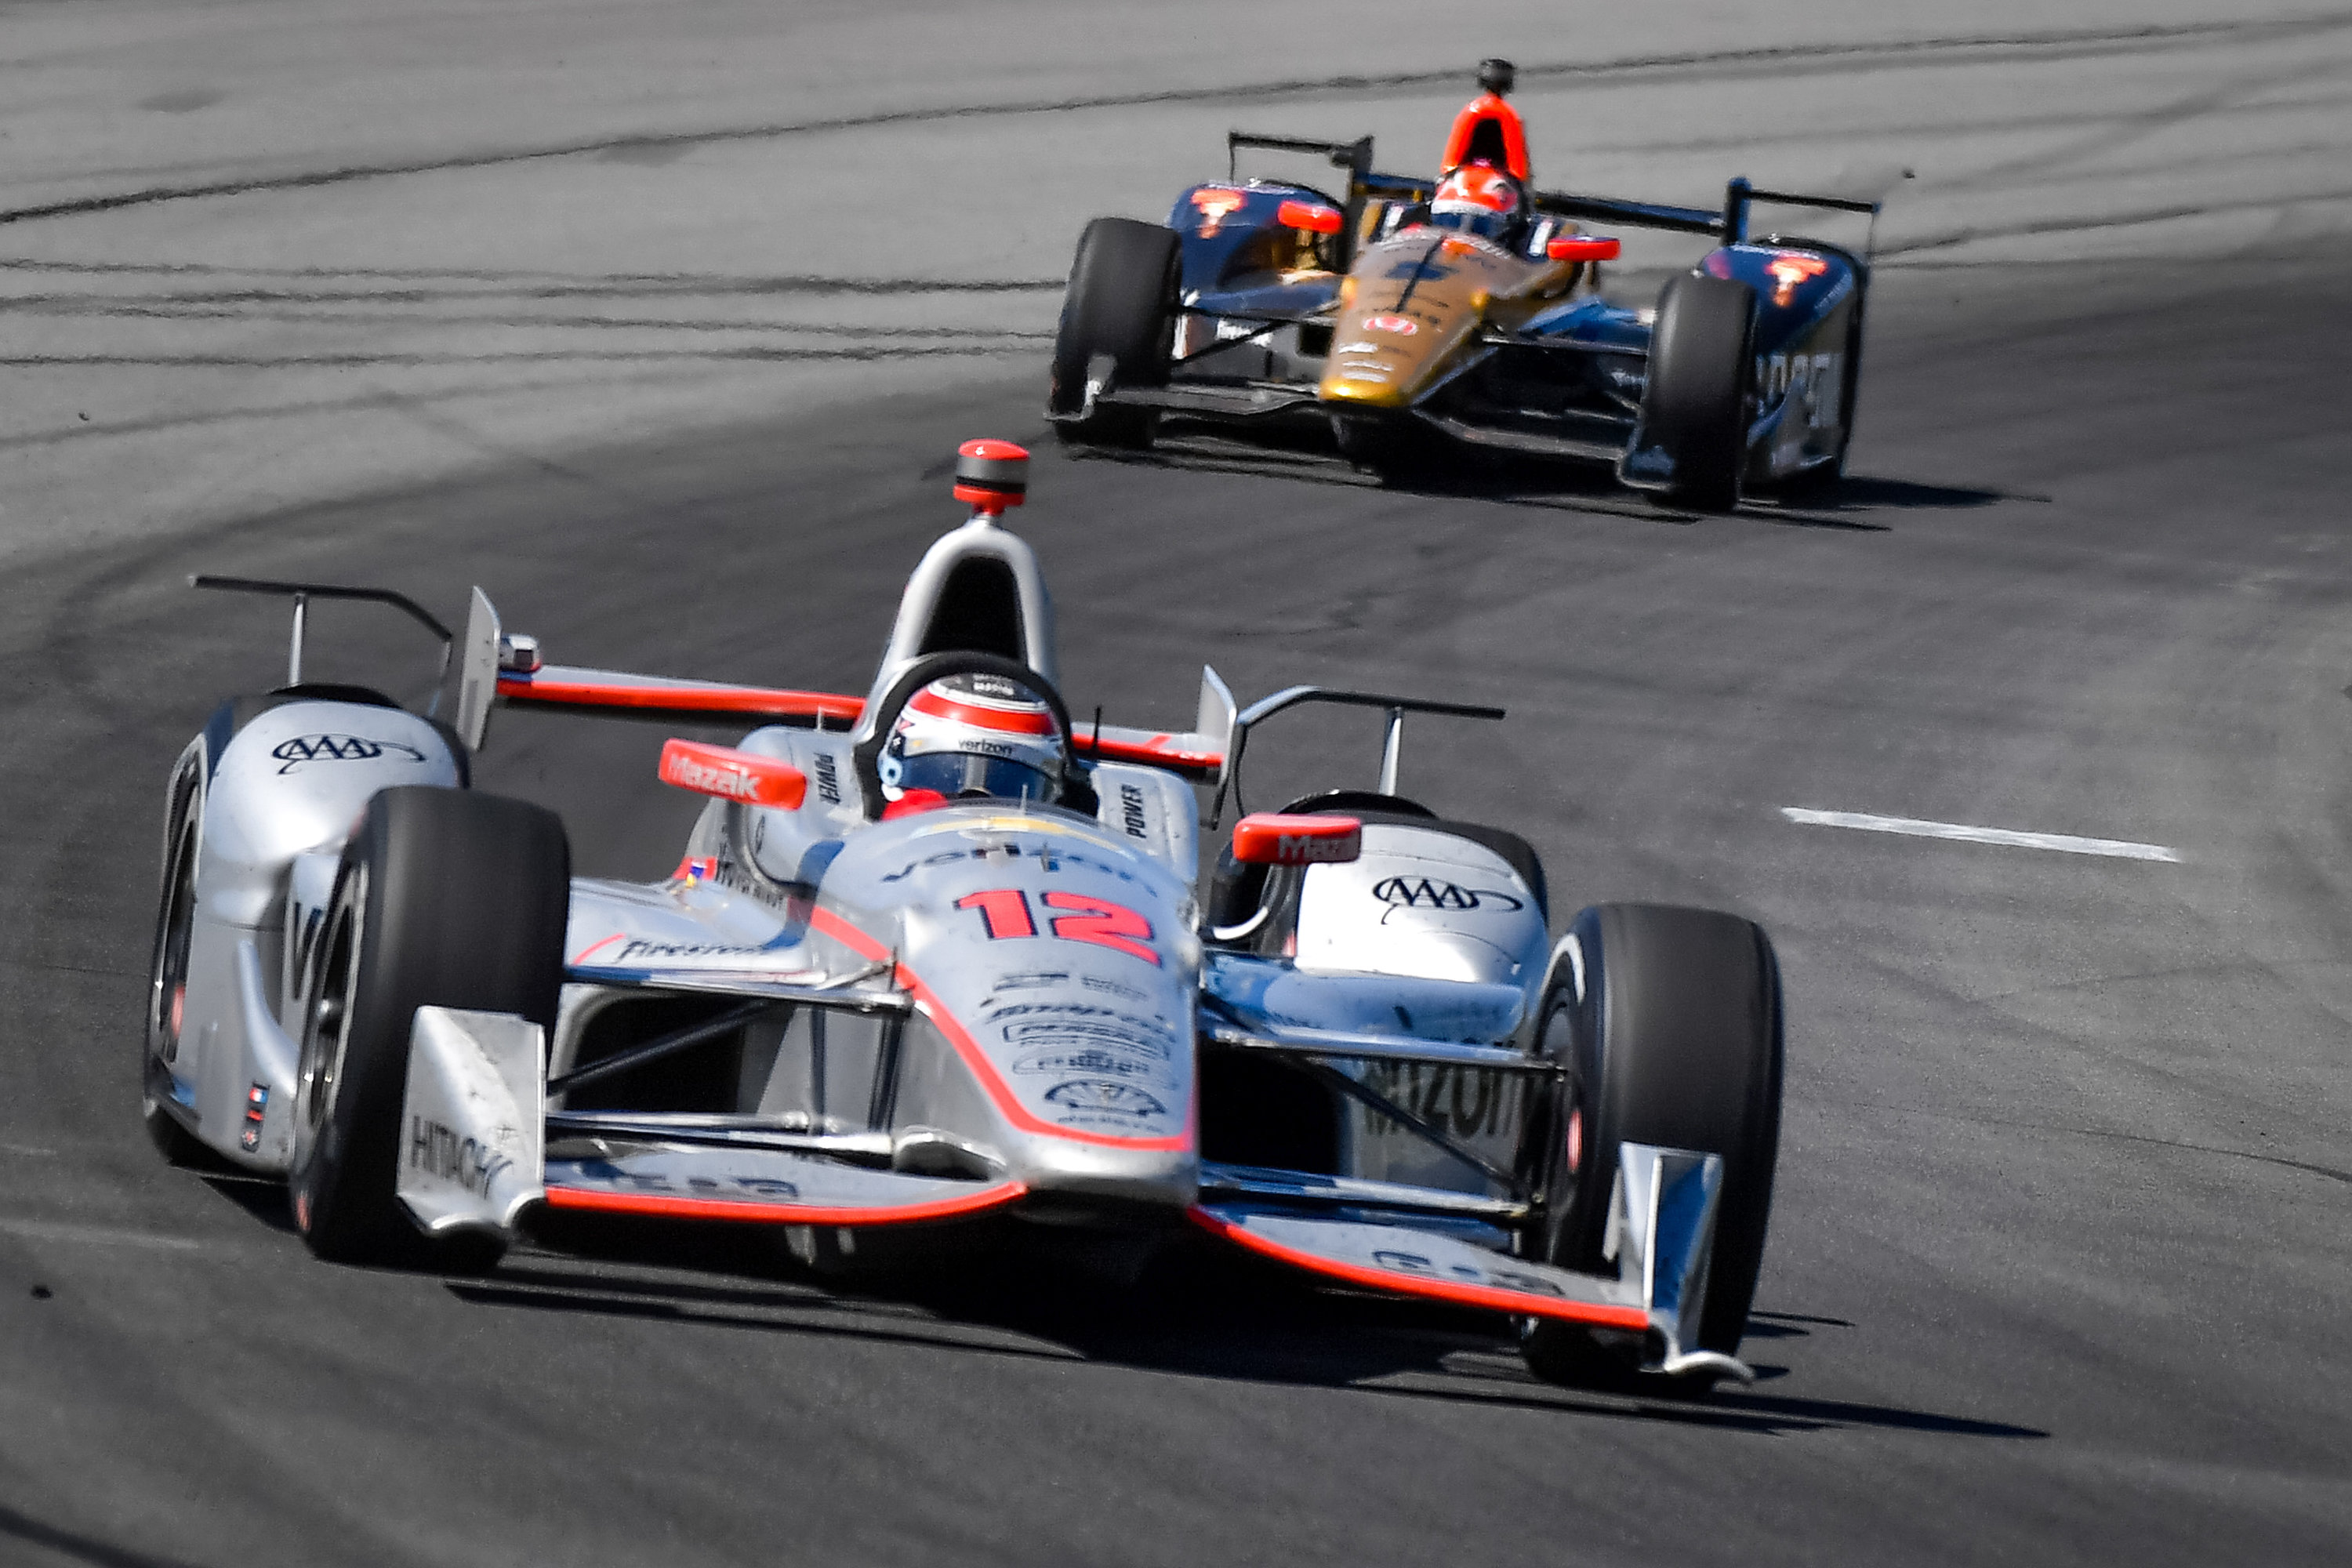 the Chevolet Indycar V6 engine is developed by Ilmor